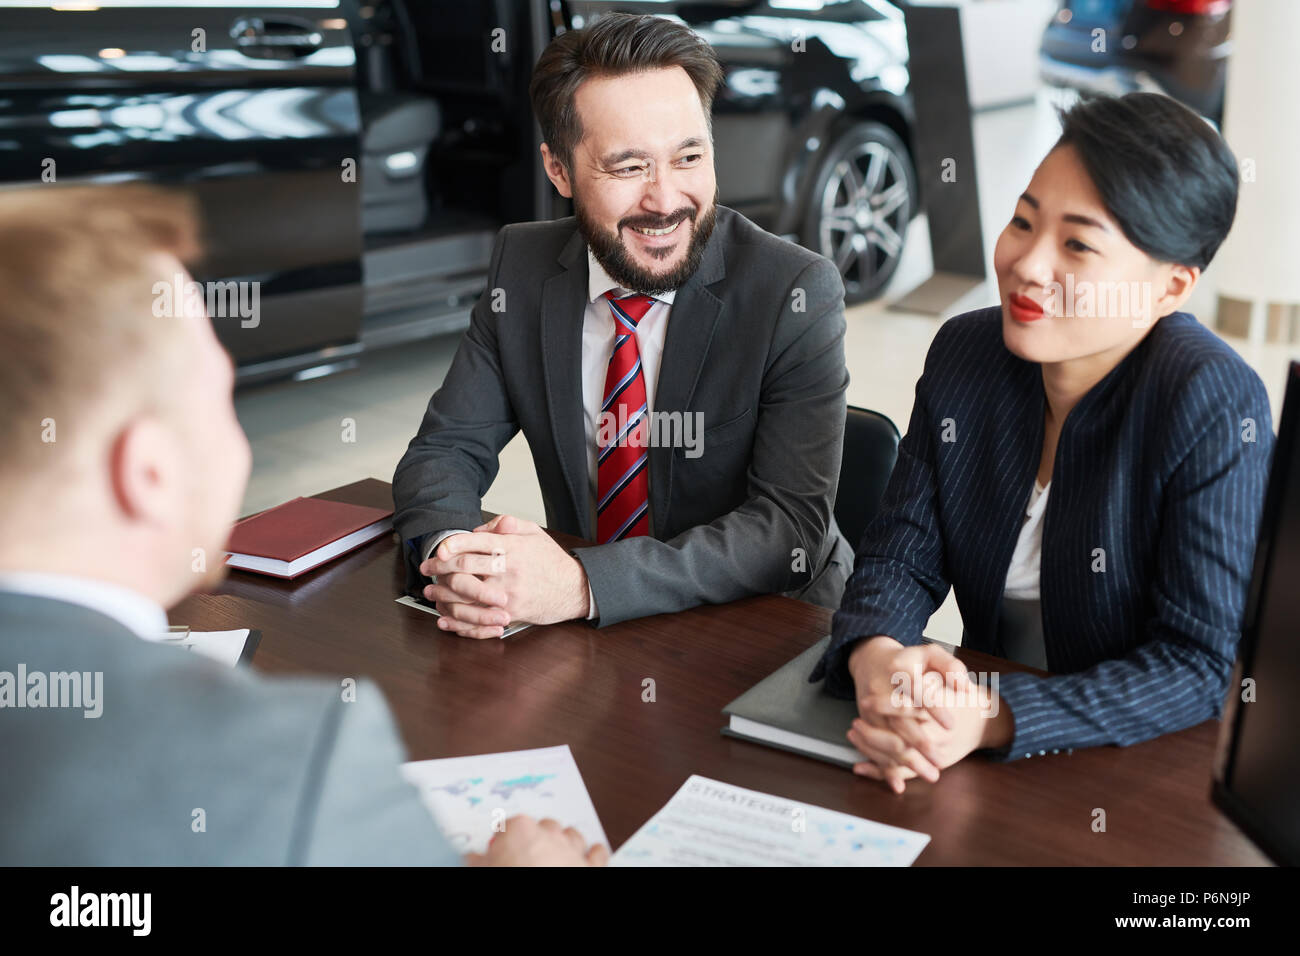 Business people at auto salon - Stock Image